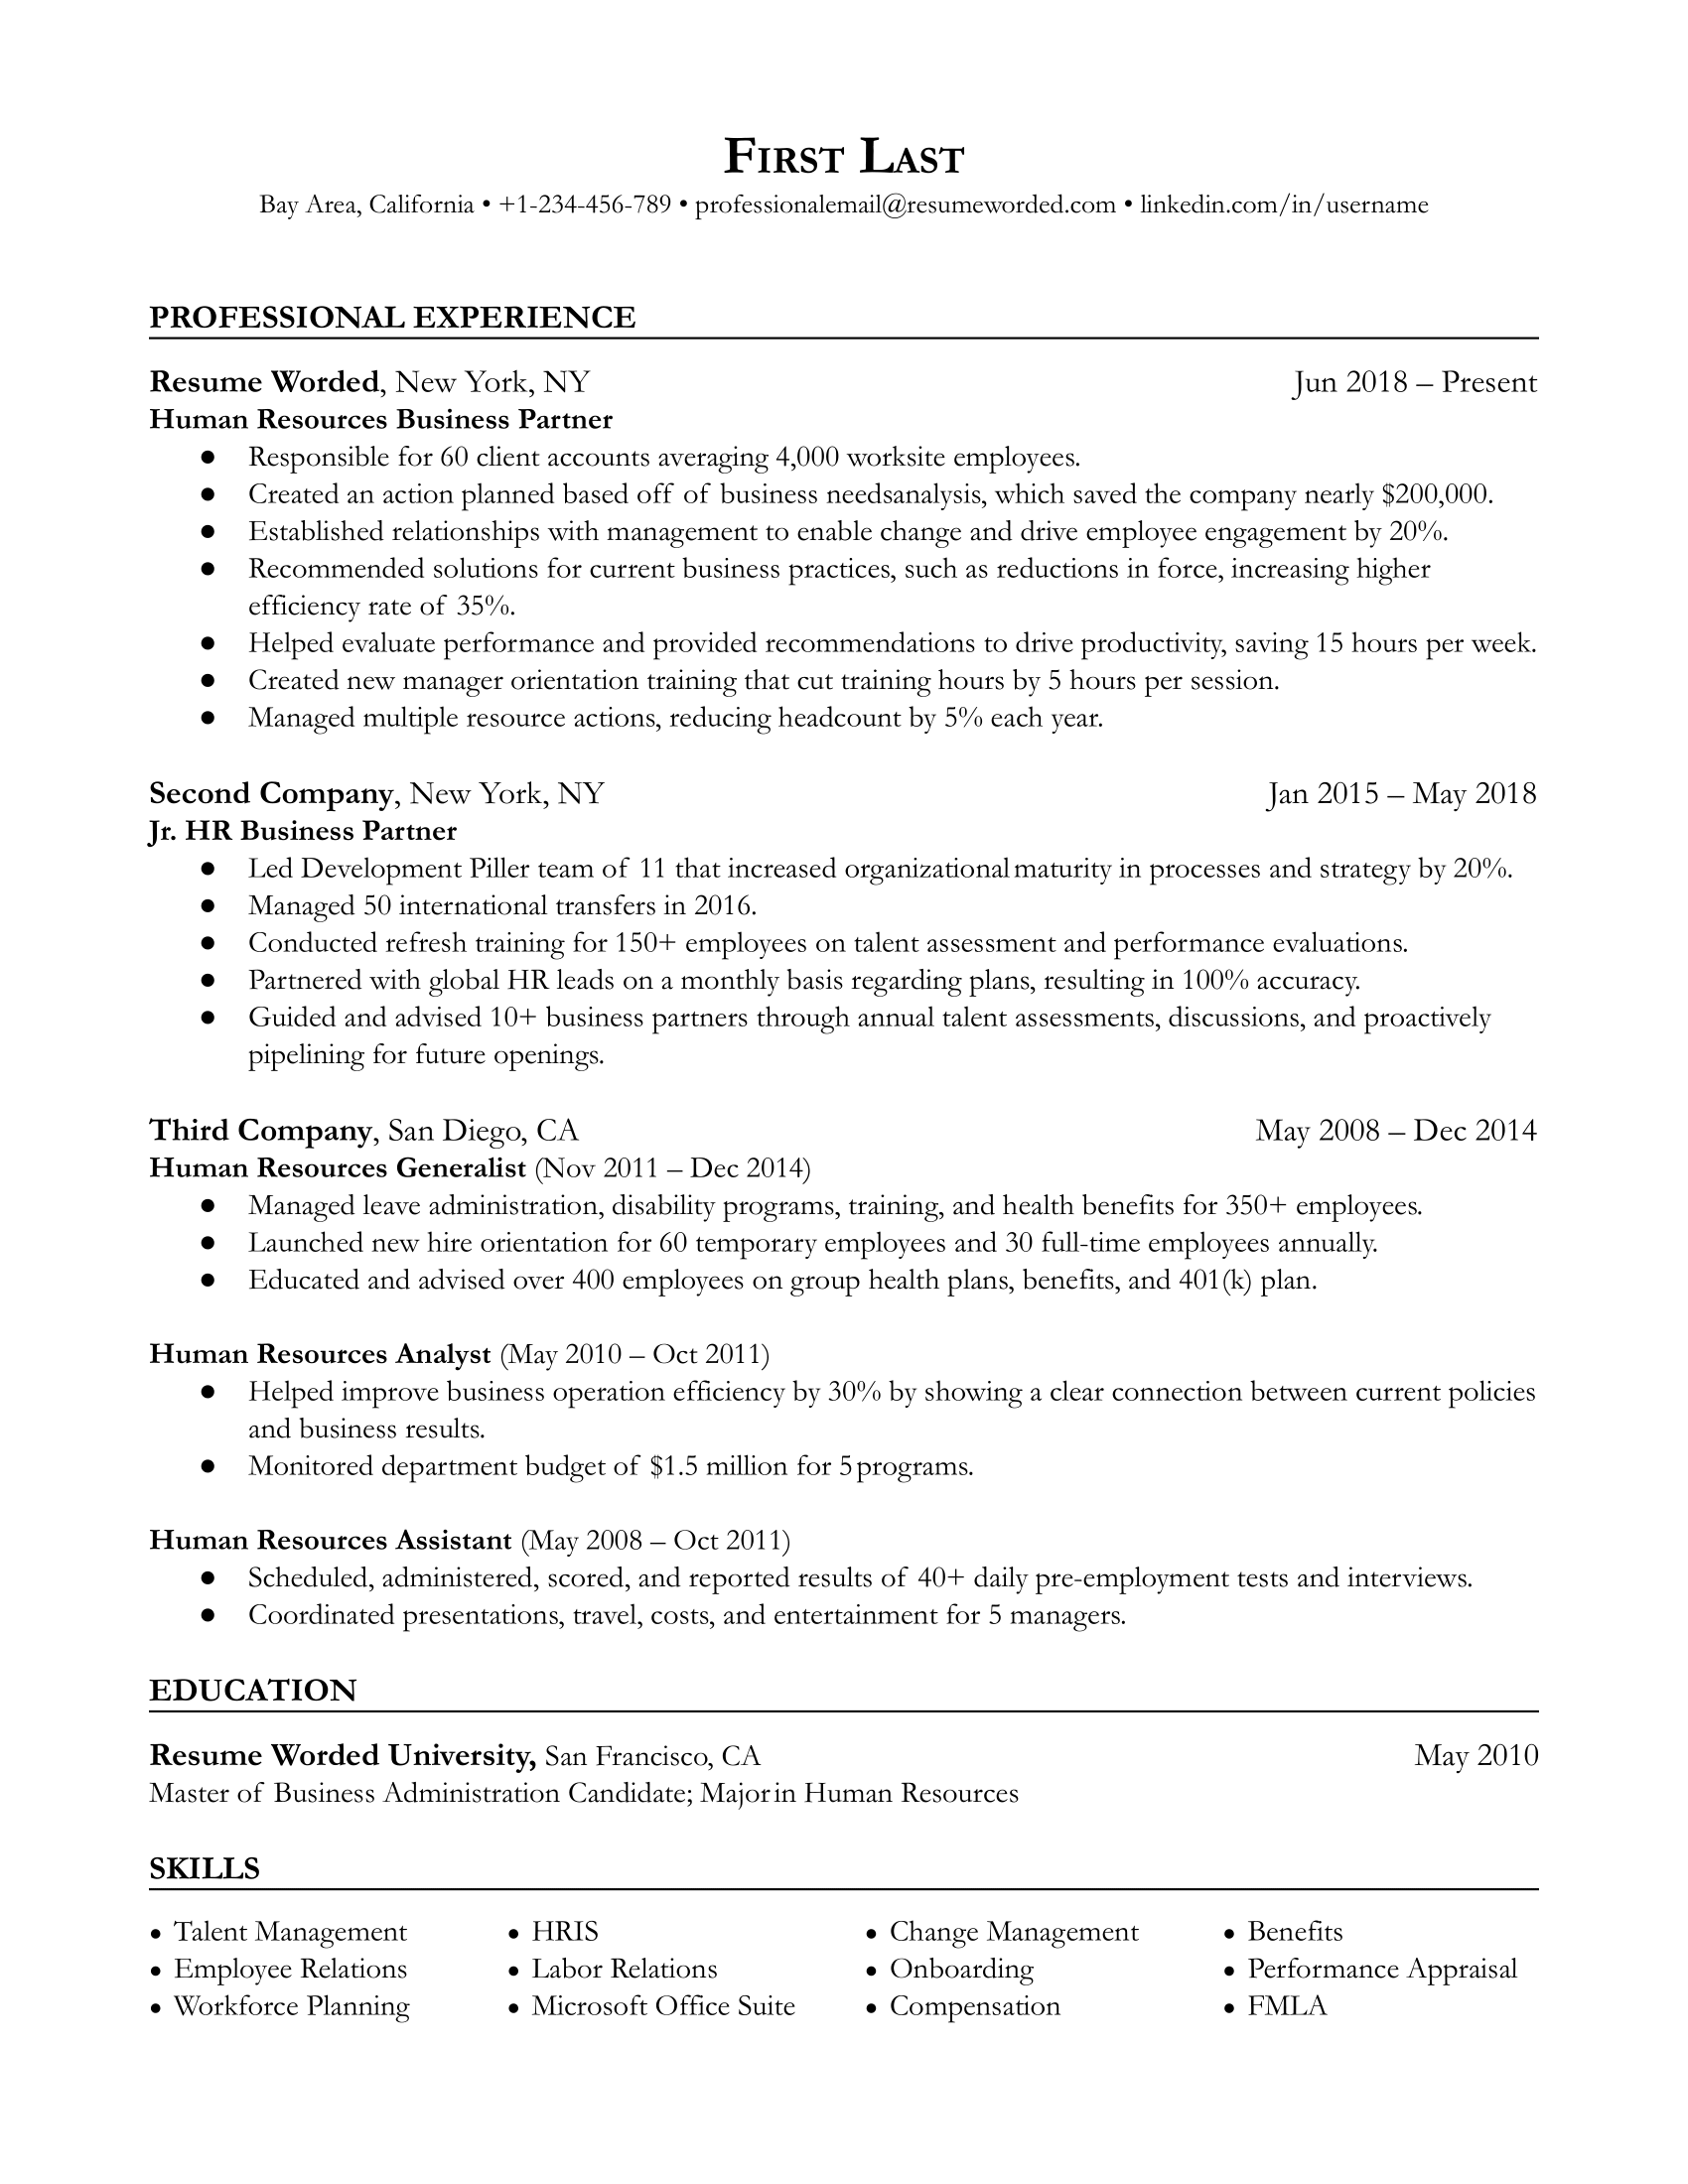 Human Resources (HR) Business Partner Resume Sample